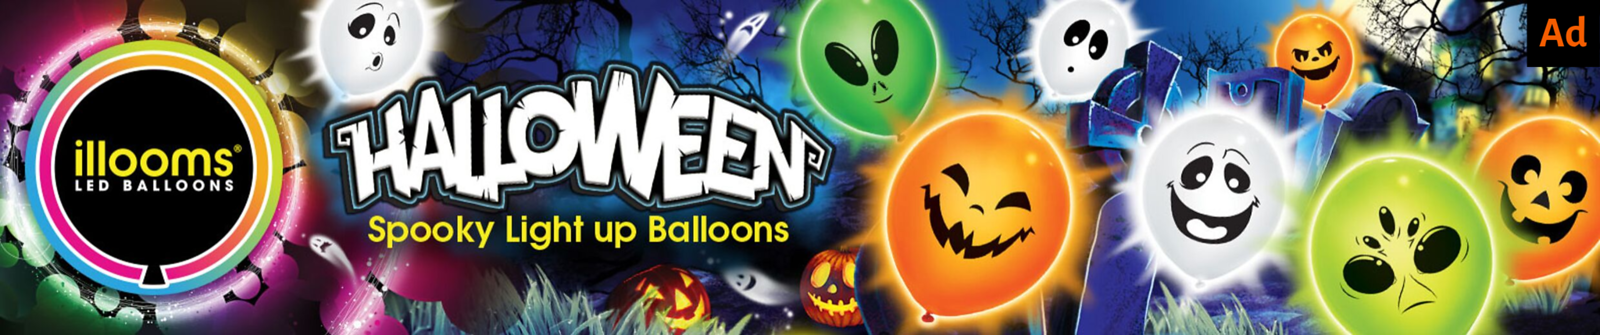 Illoom Balloon Halloween Glow in the Dark Balloons